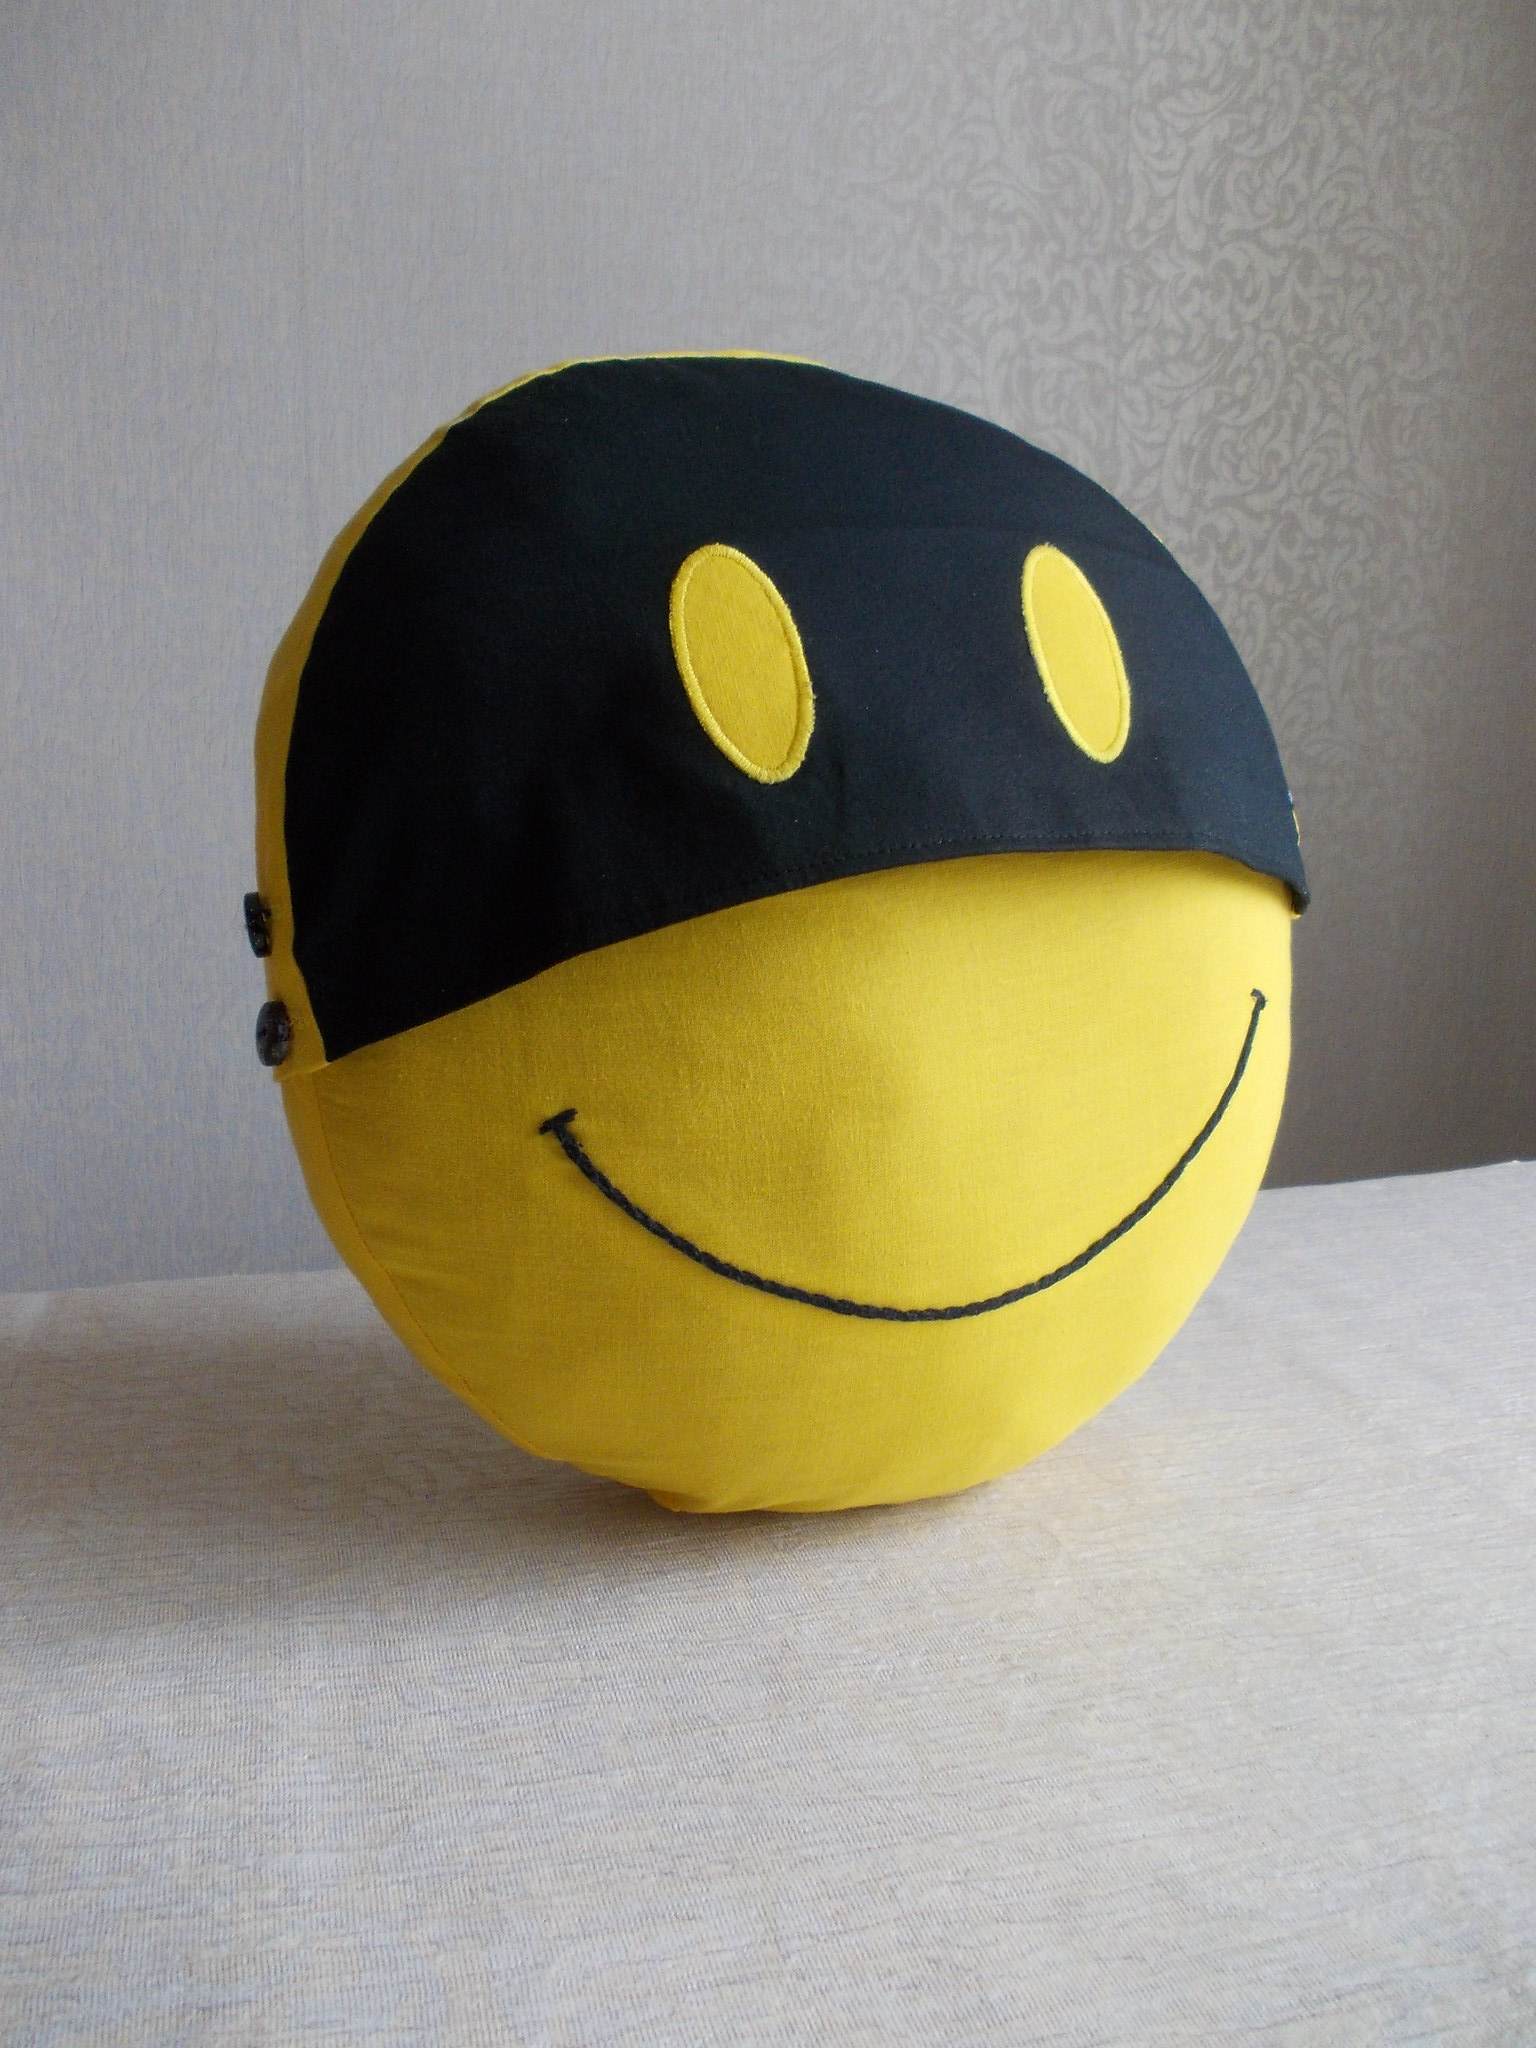 Smiley face cotton yellow round pillow cover, double sided smiley cotton pillow case with insert pillow 63